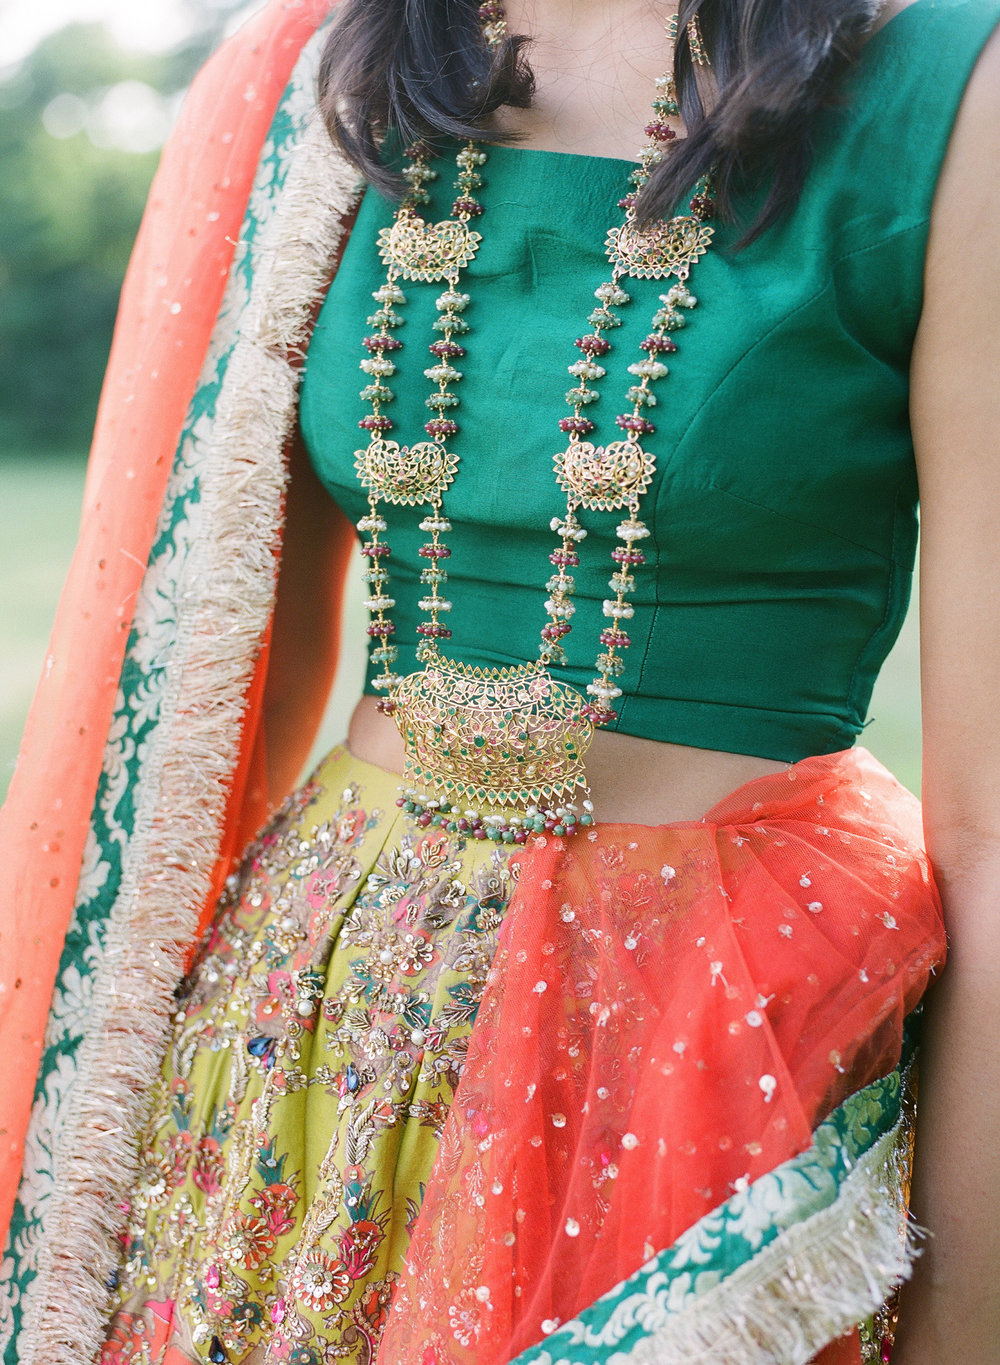 South Asian Bridal Attire